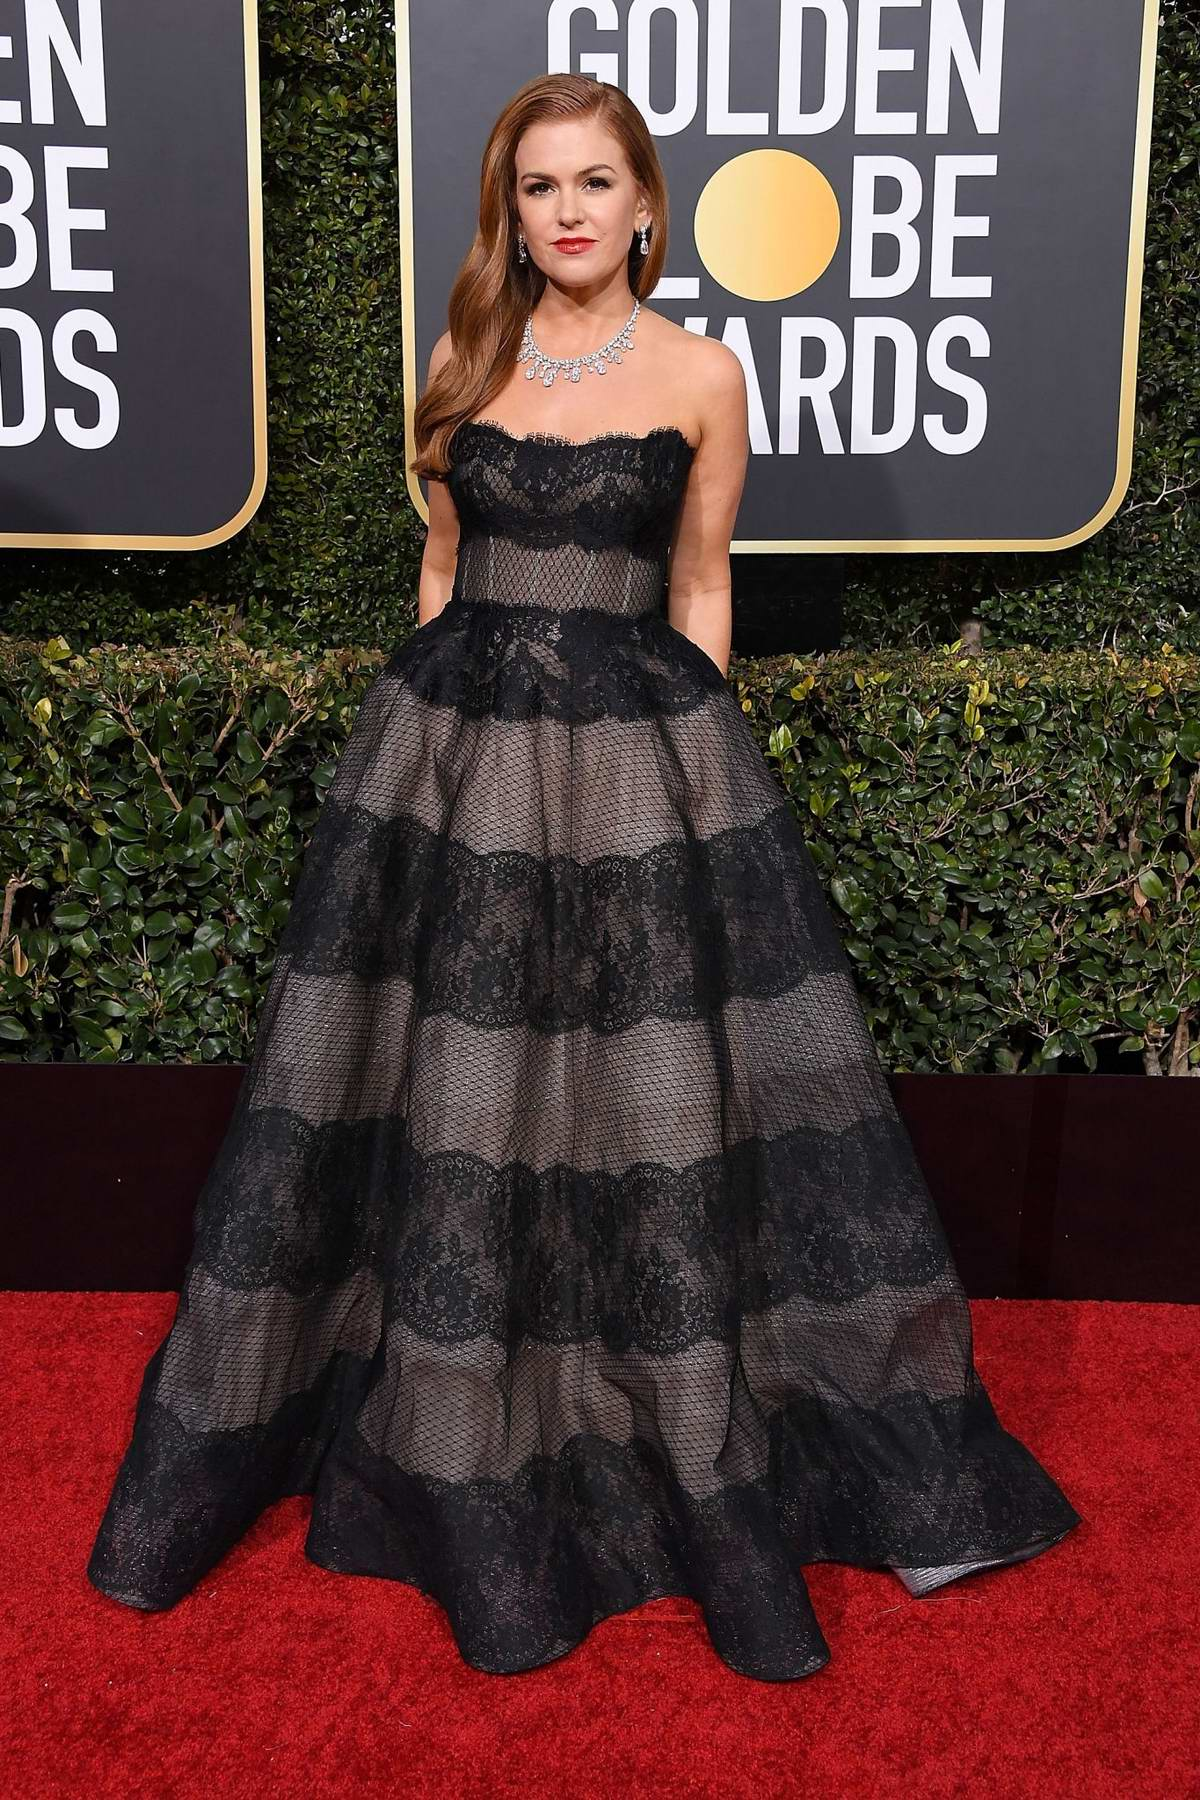 Isla Fisher attends the 76th Annual Golden Globe Awards held at The Beverly Hilton Hotel in Los Angeles, California